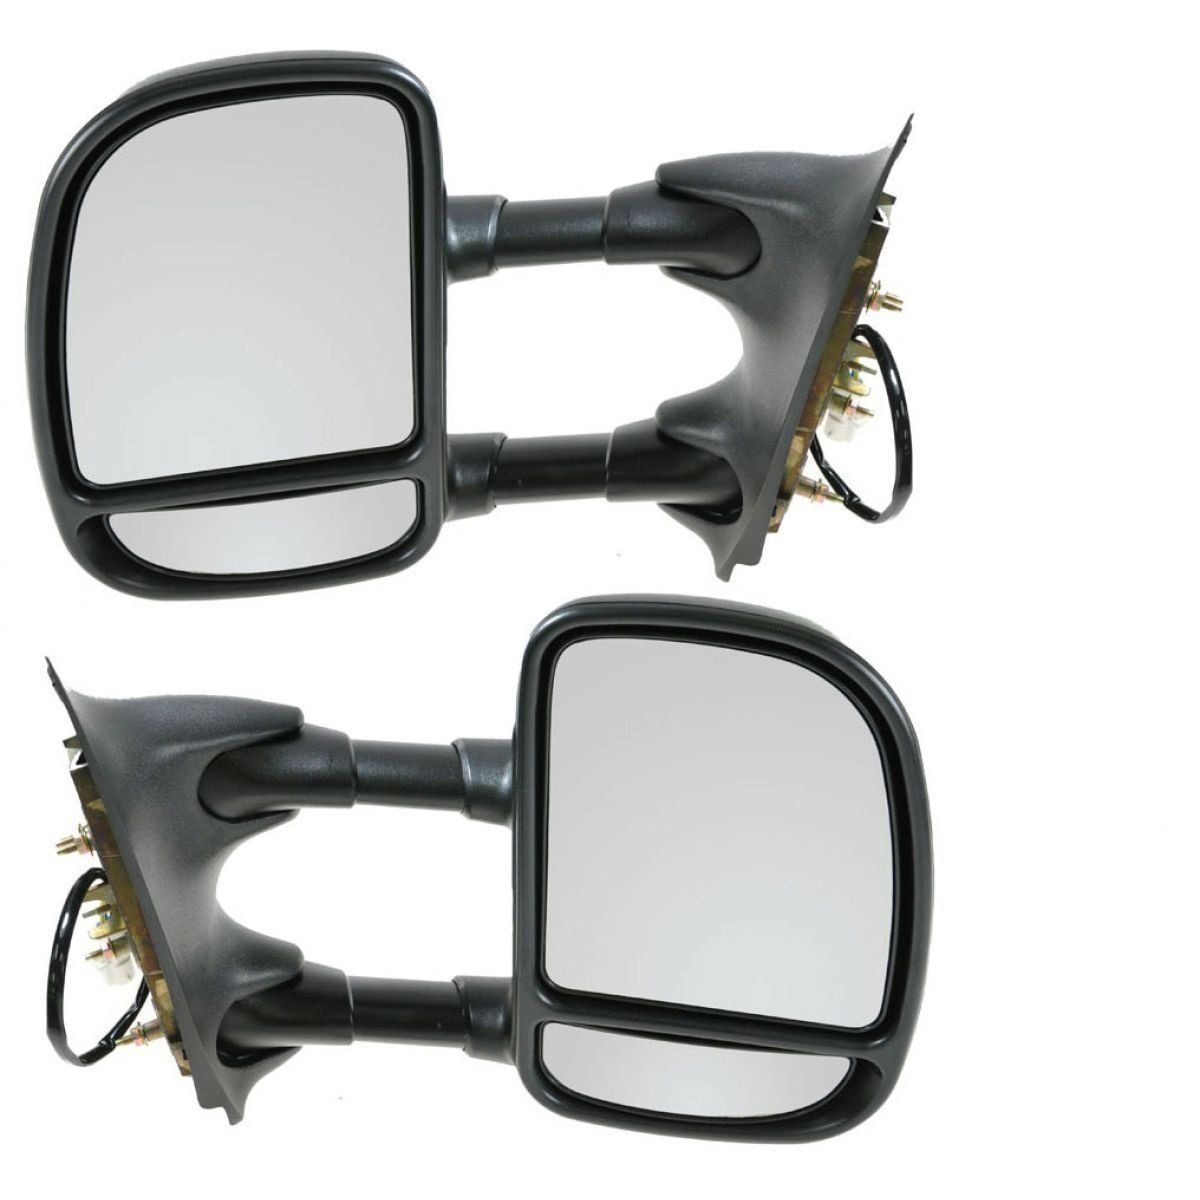 Make Auto Parts Manufacturing Power Towing Mirrors For Ford F250 2004 F 250 Super Duty Mirror Cover F350 F450 F550 99 04 Truck Folding Pair Set Left And Right